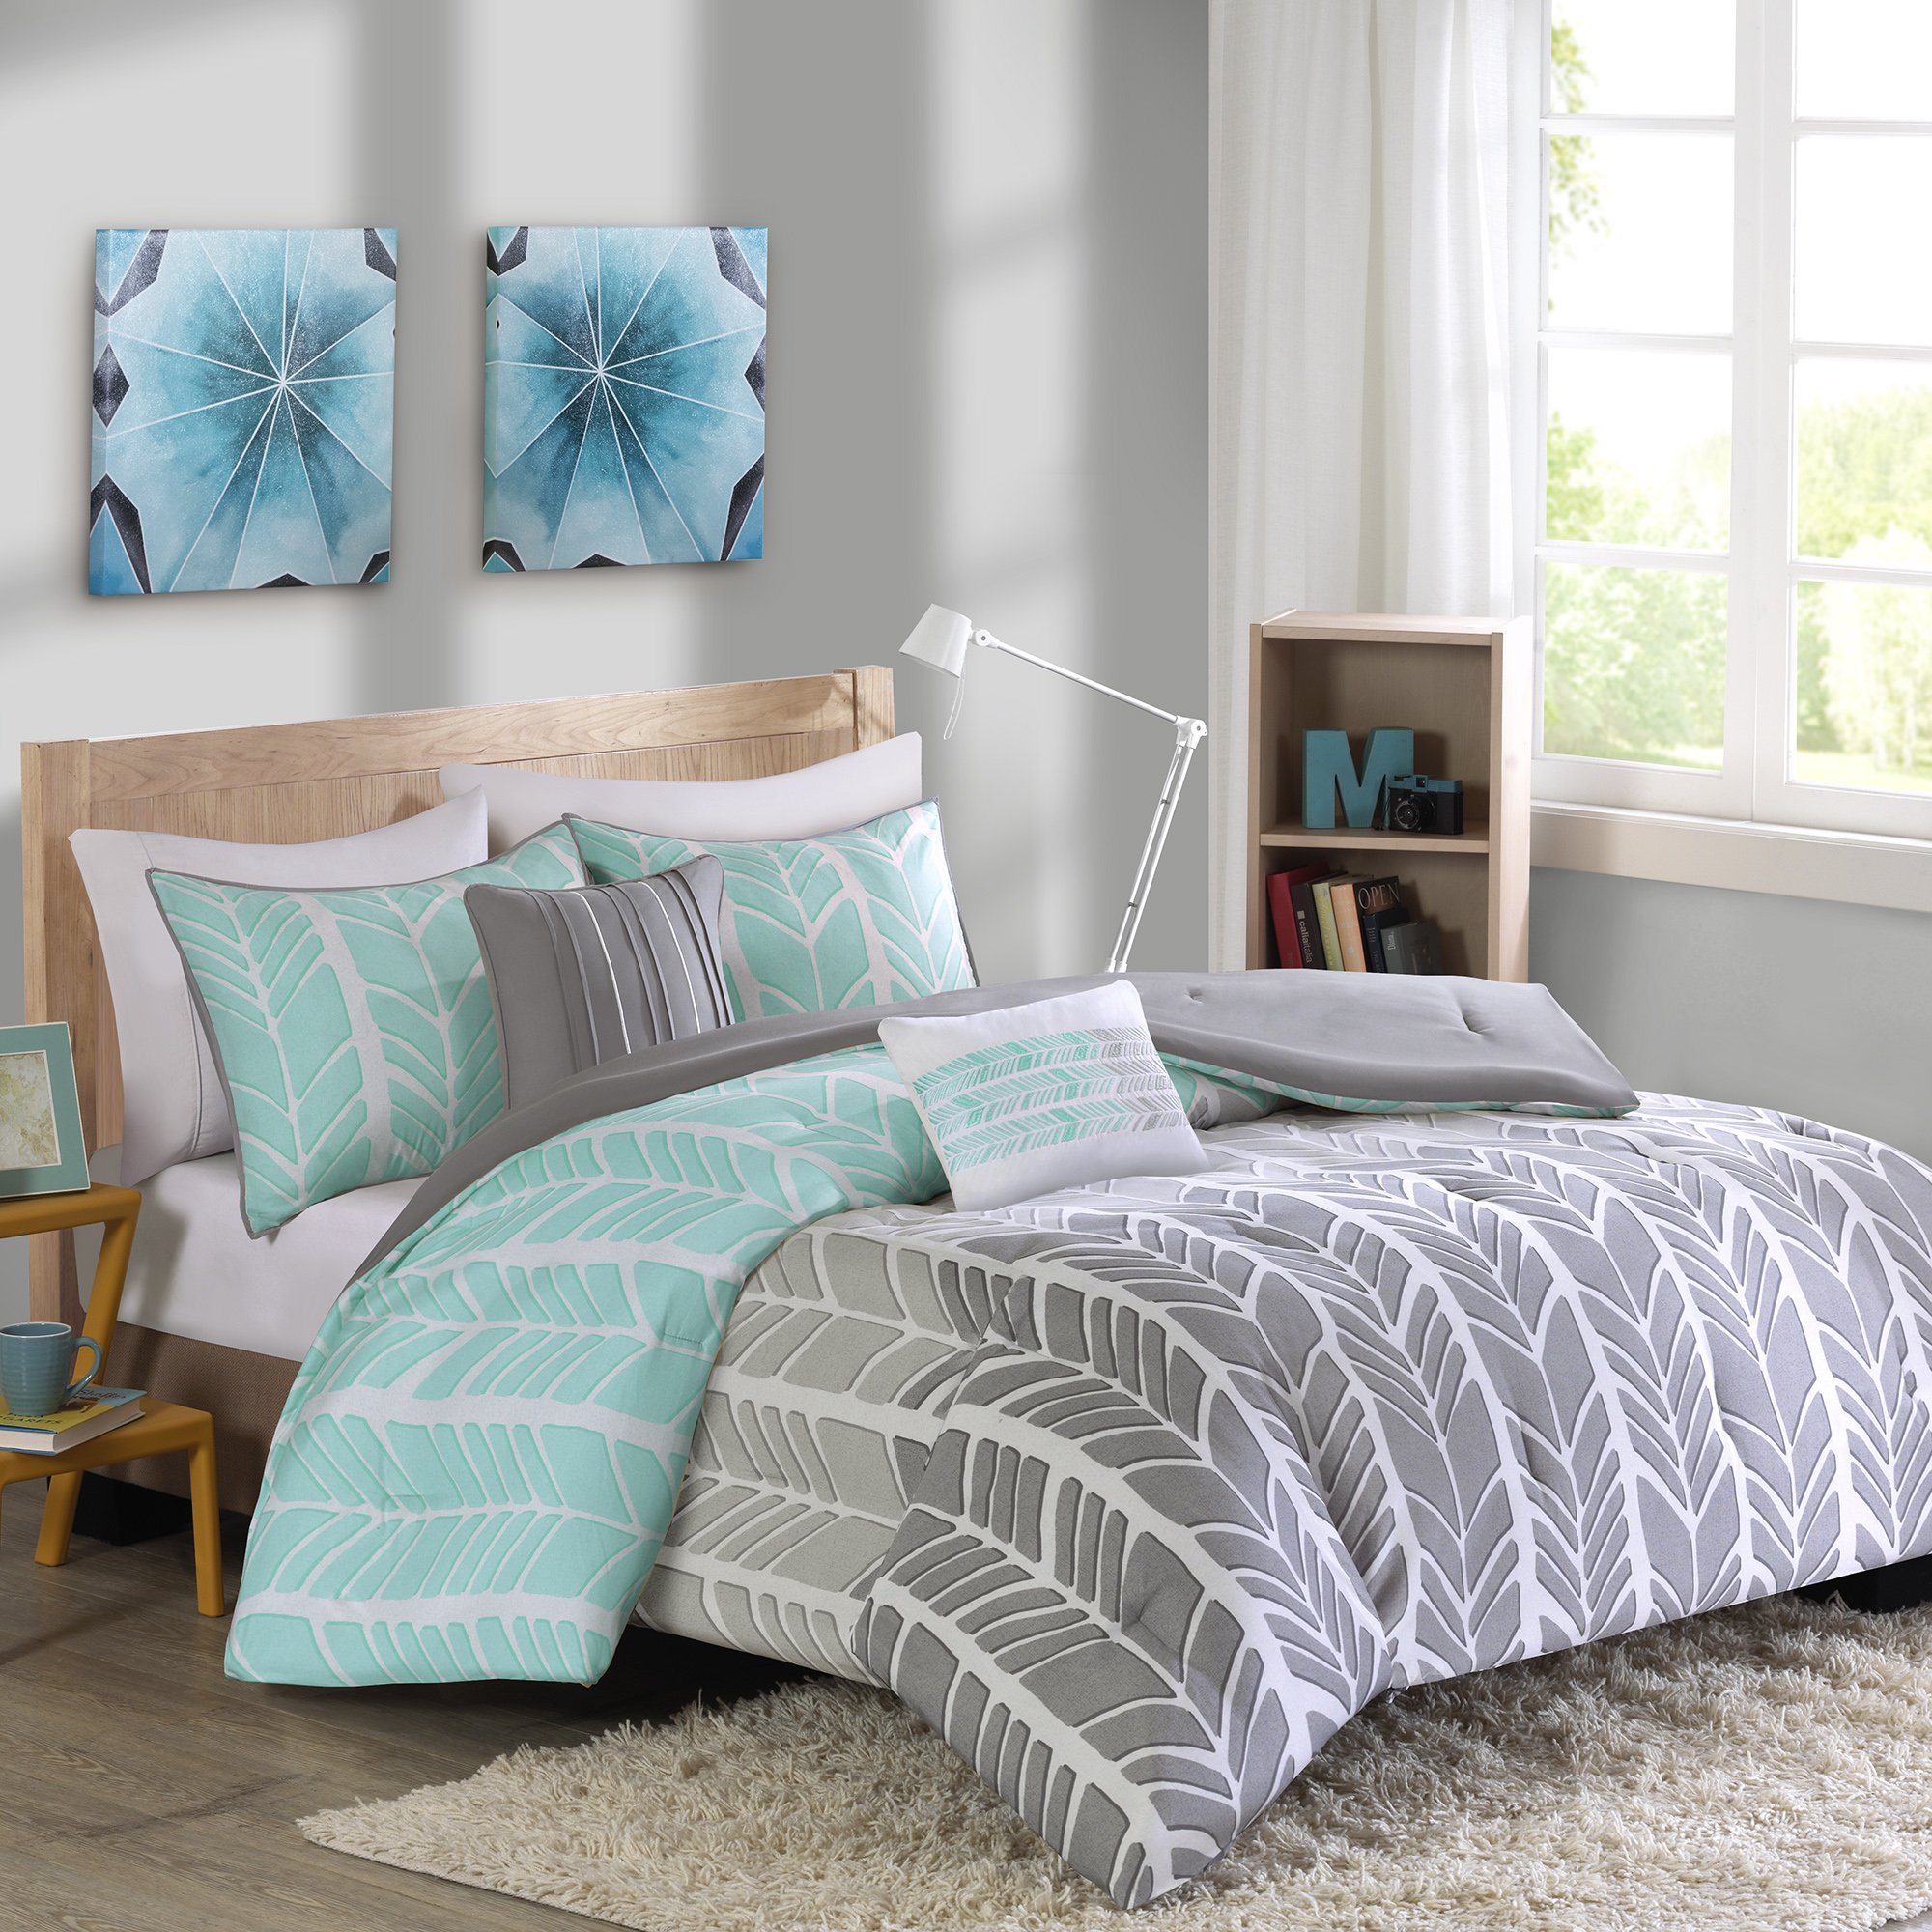 Intelligent Design ID10-748 Comforter Set, Full/Queen, Aqua by Intelligent Design